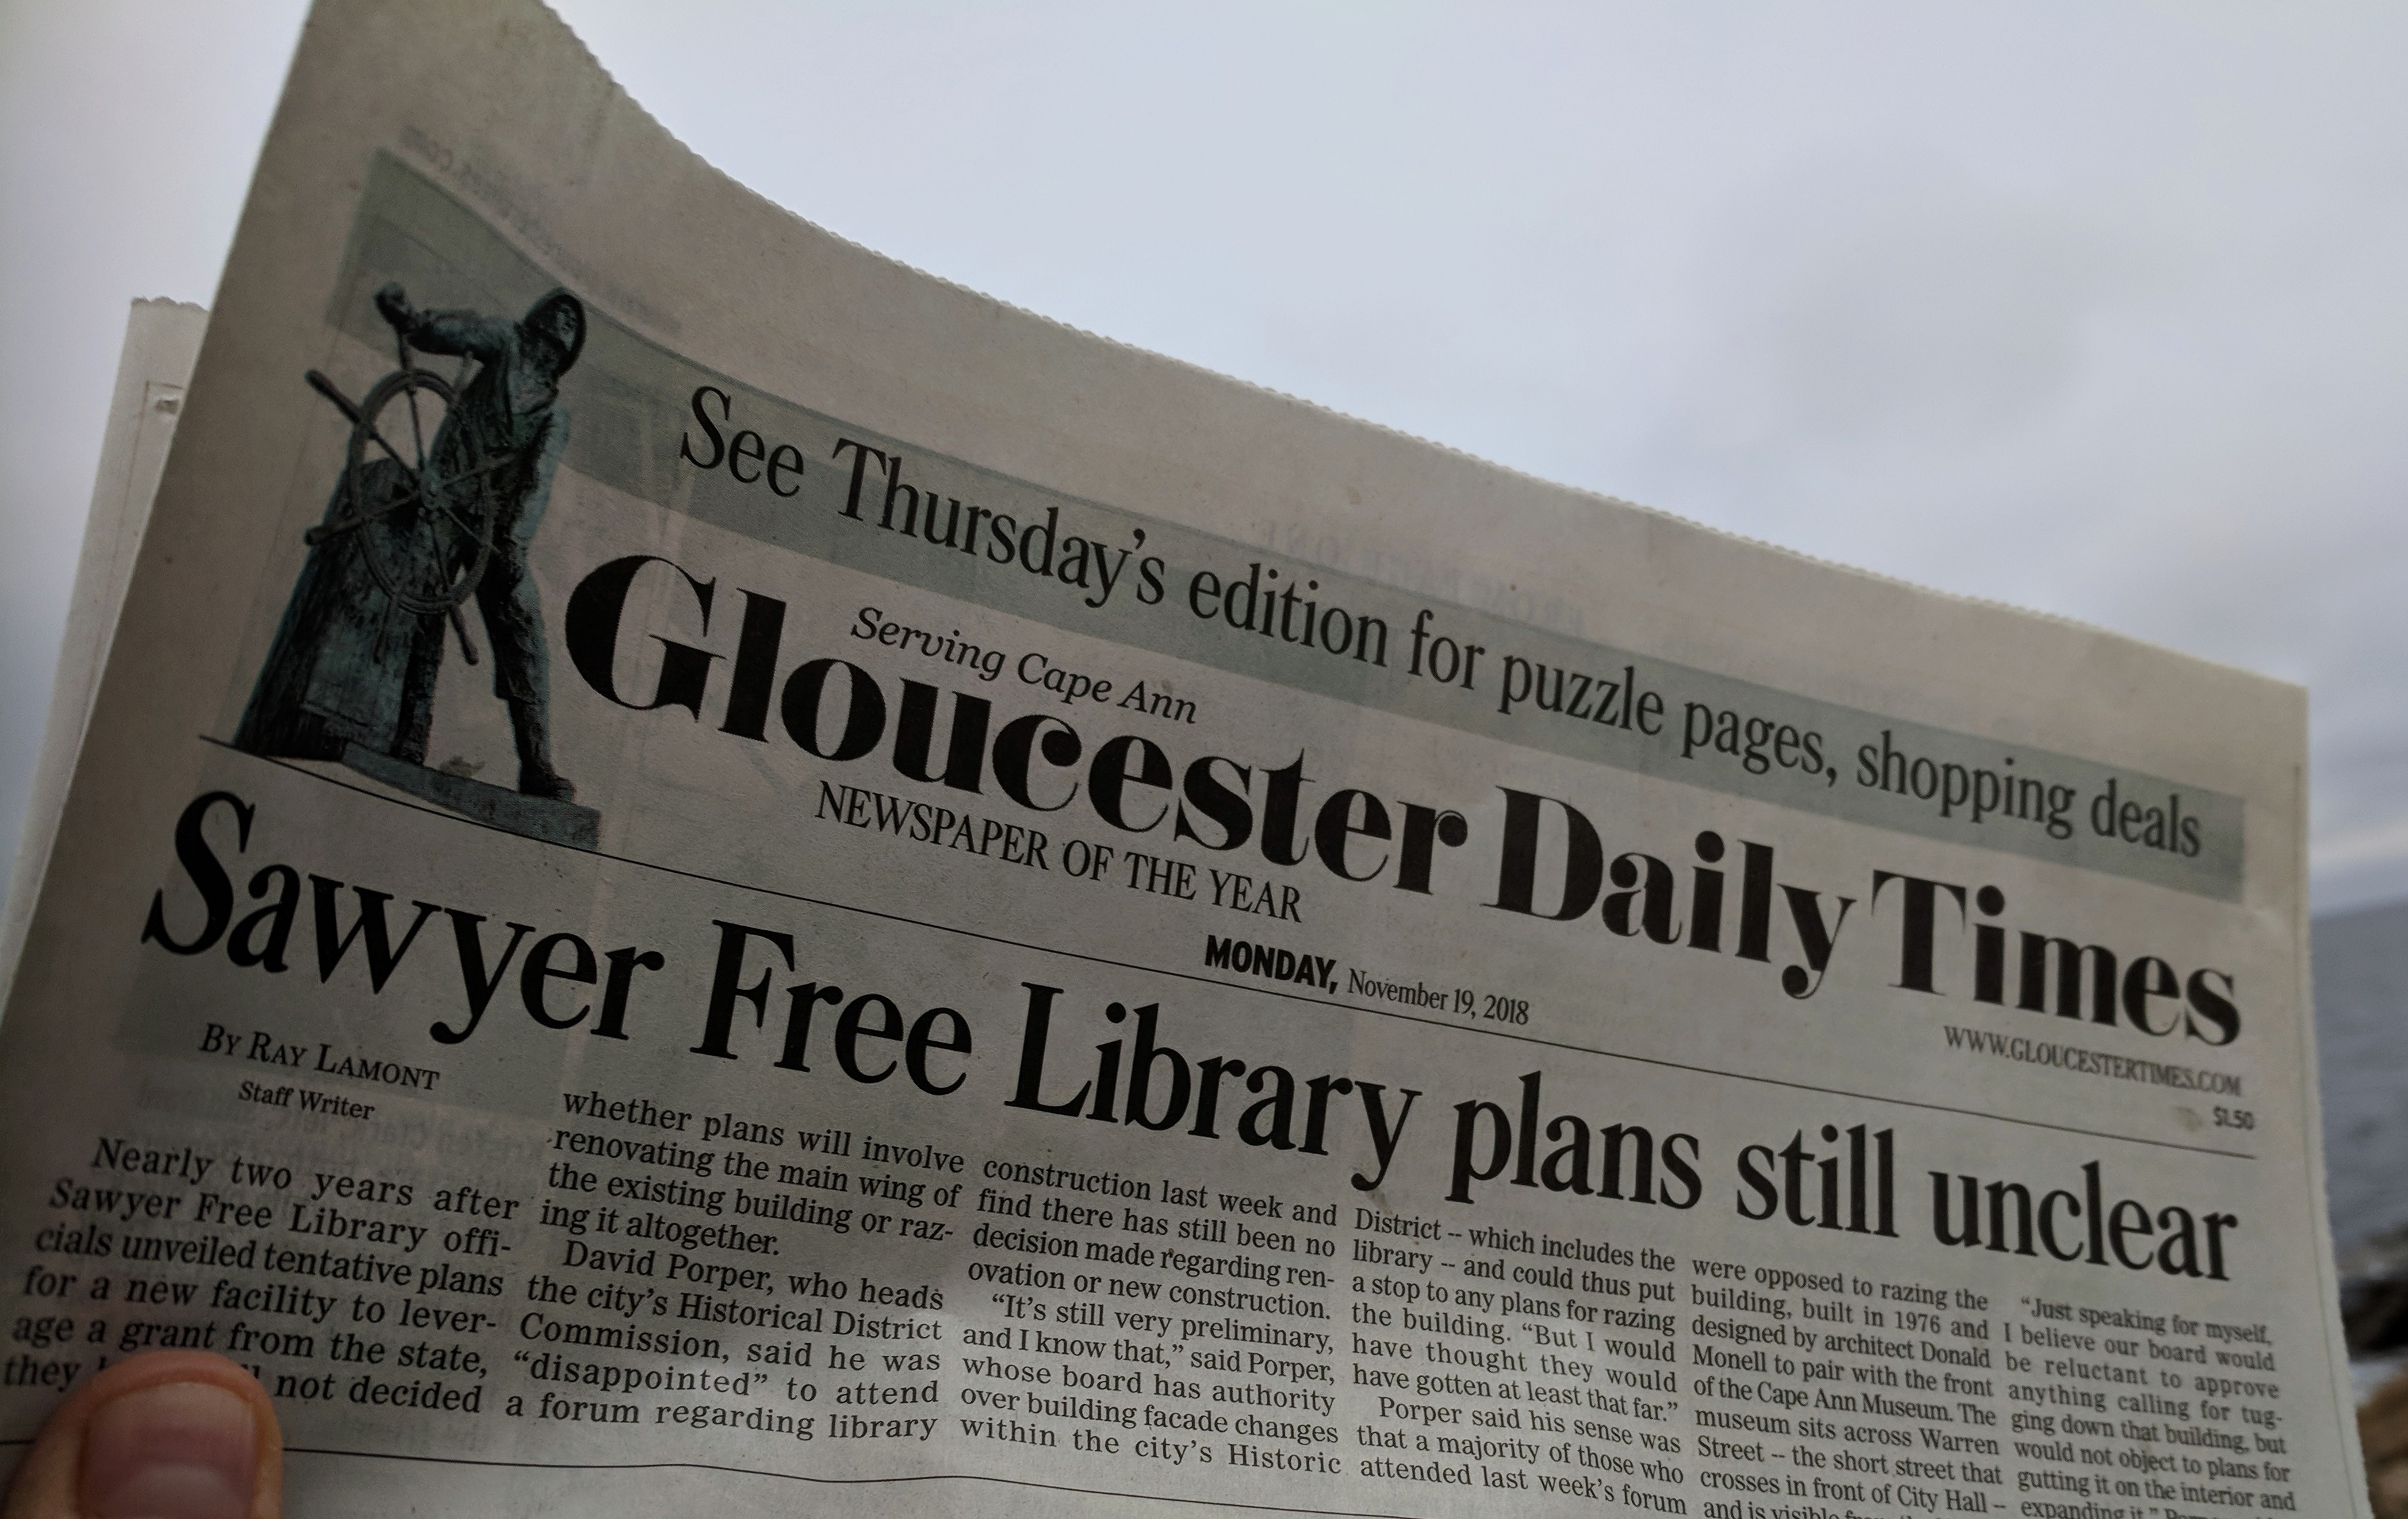 Ray Lamont article above the fold_library building plans update_Gloucester Daily Times_20181120_©c ryan